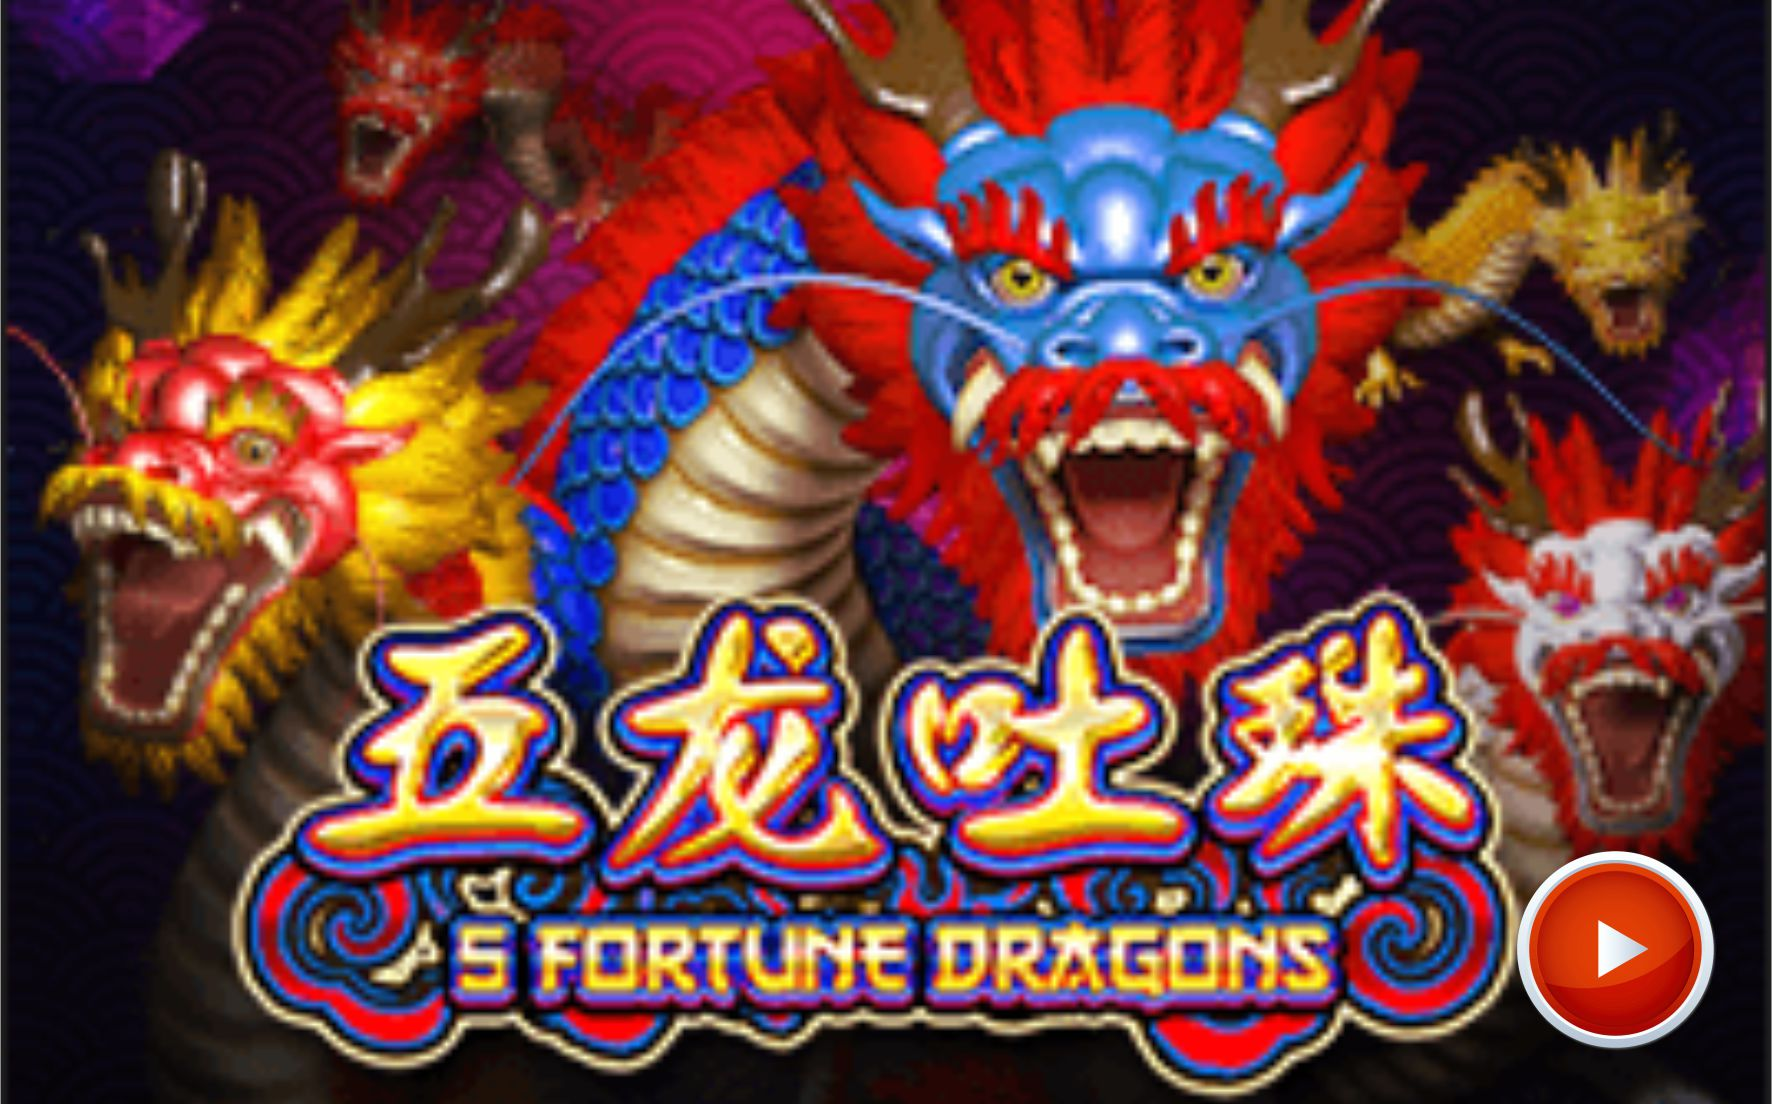 5 fortune dragons